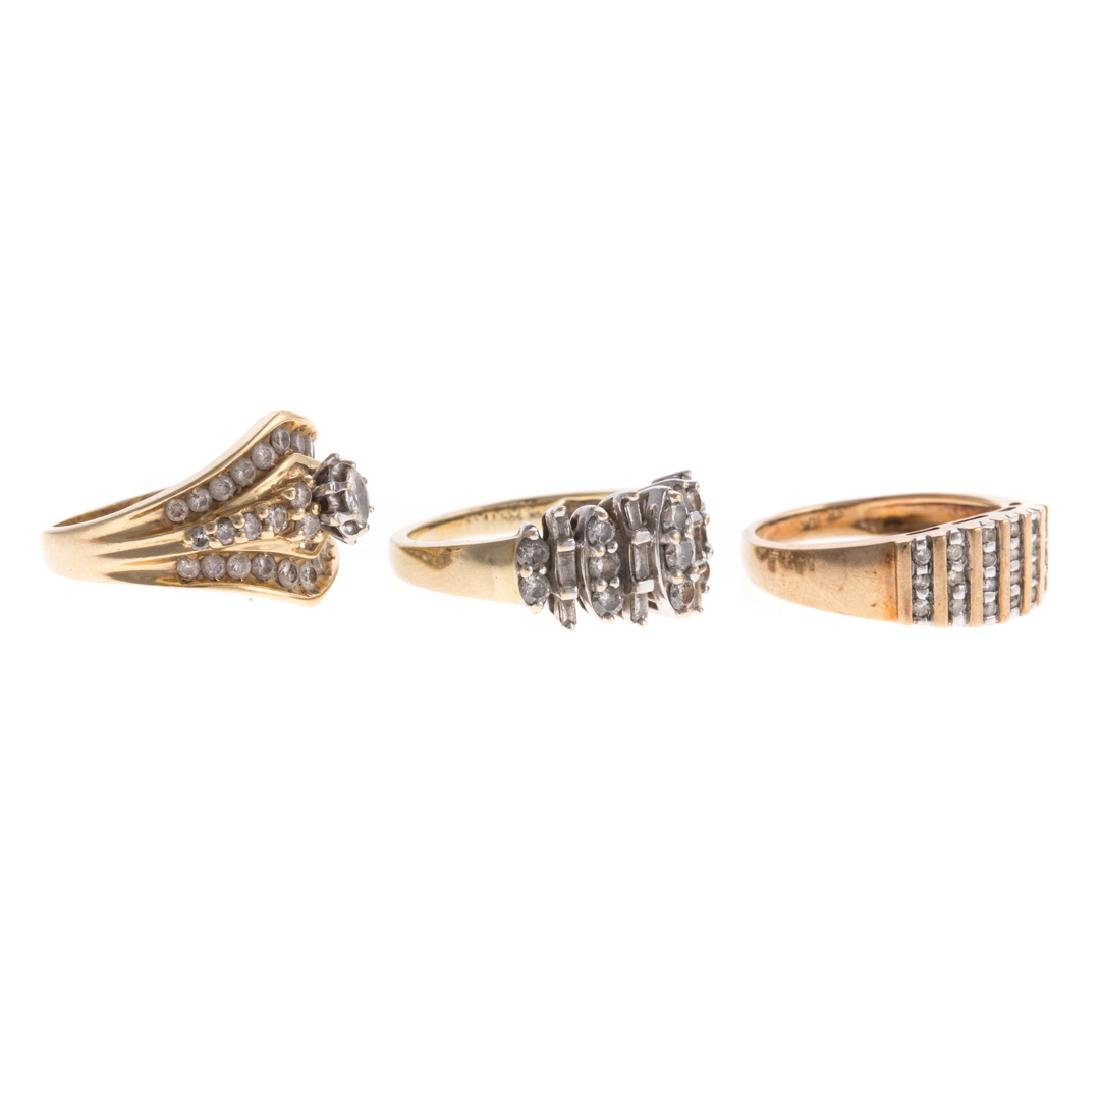 A Trio of Lady's Diamond Bands in Gold - 2